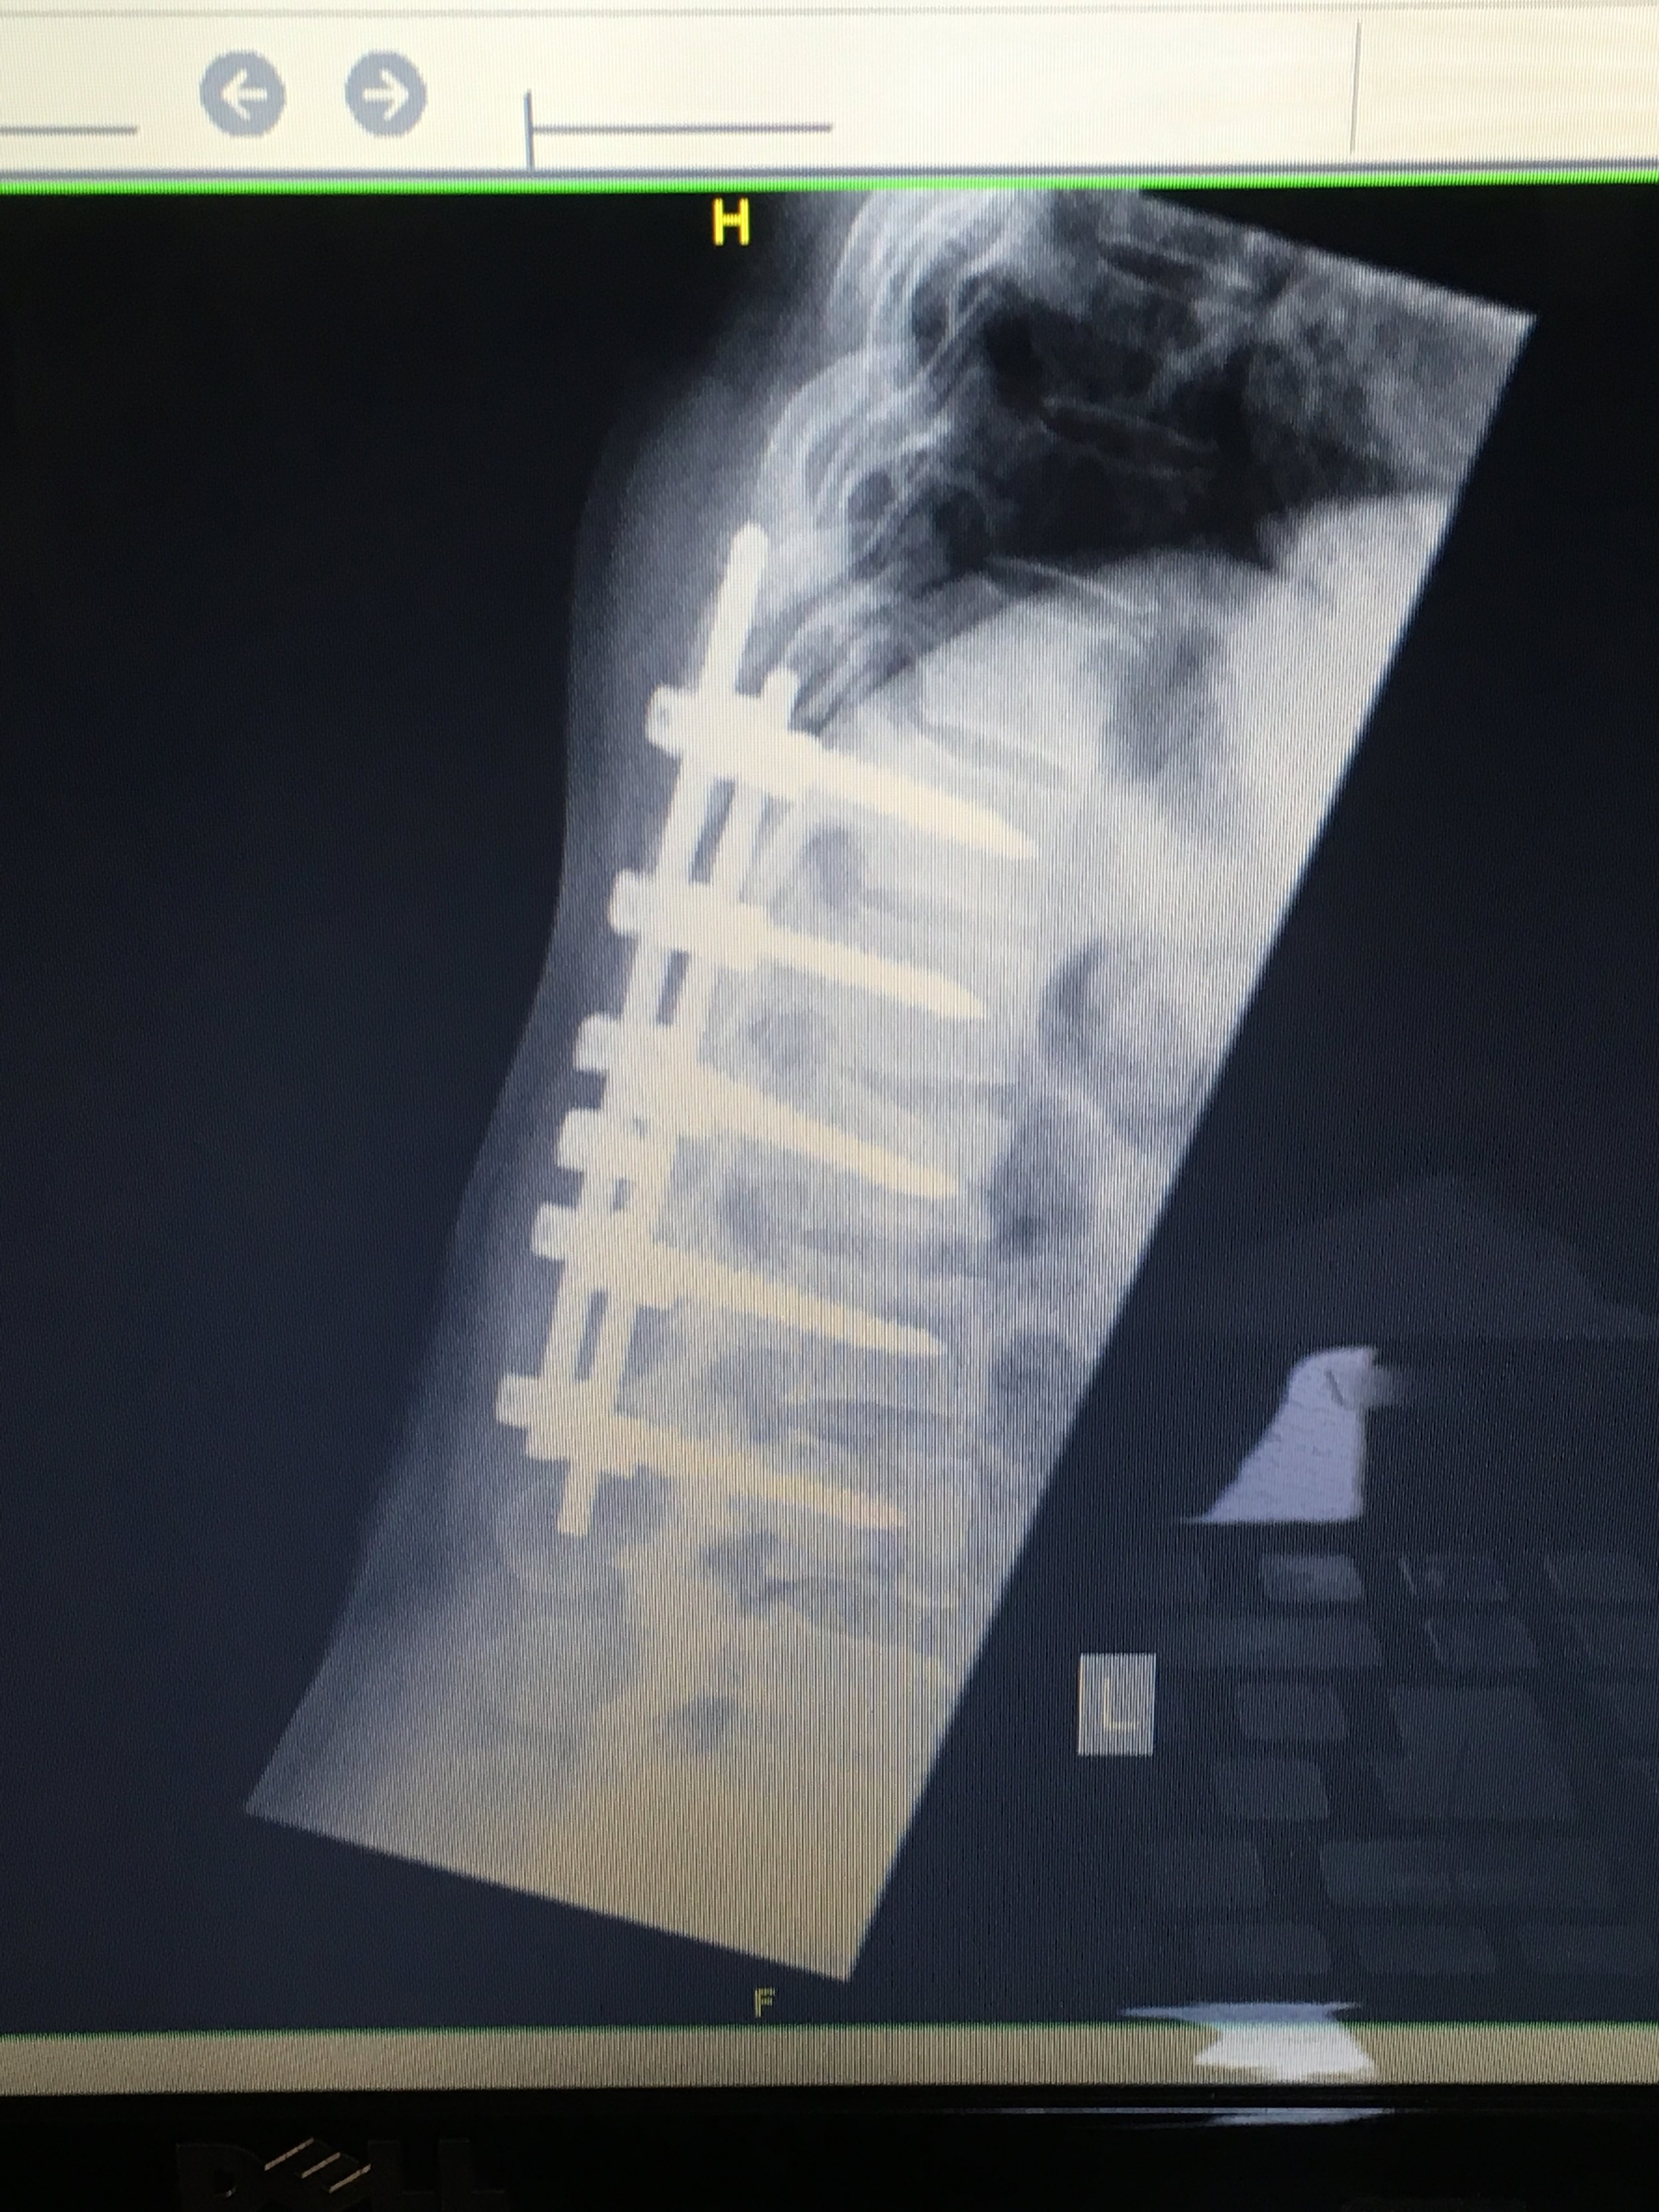 An X-ray of my back